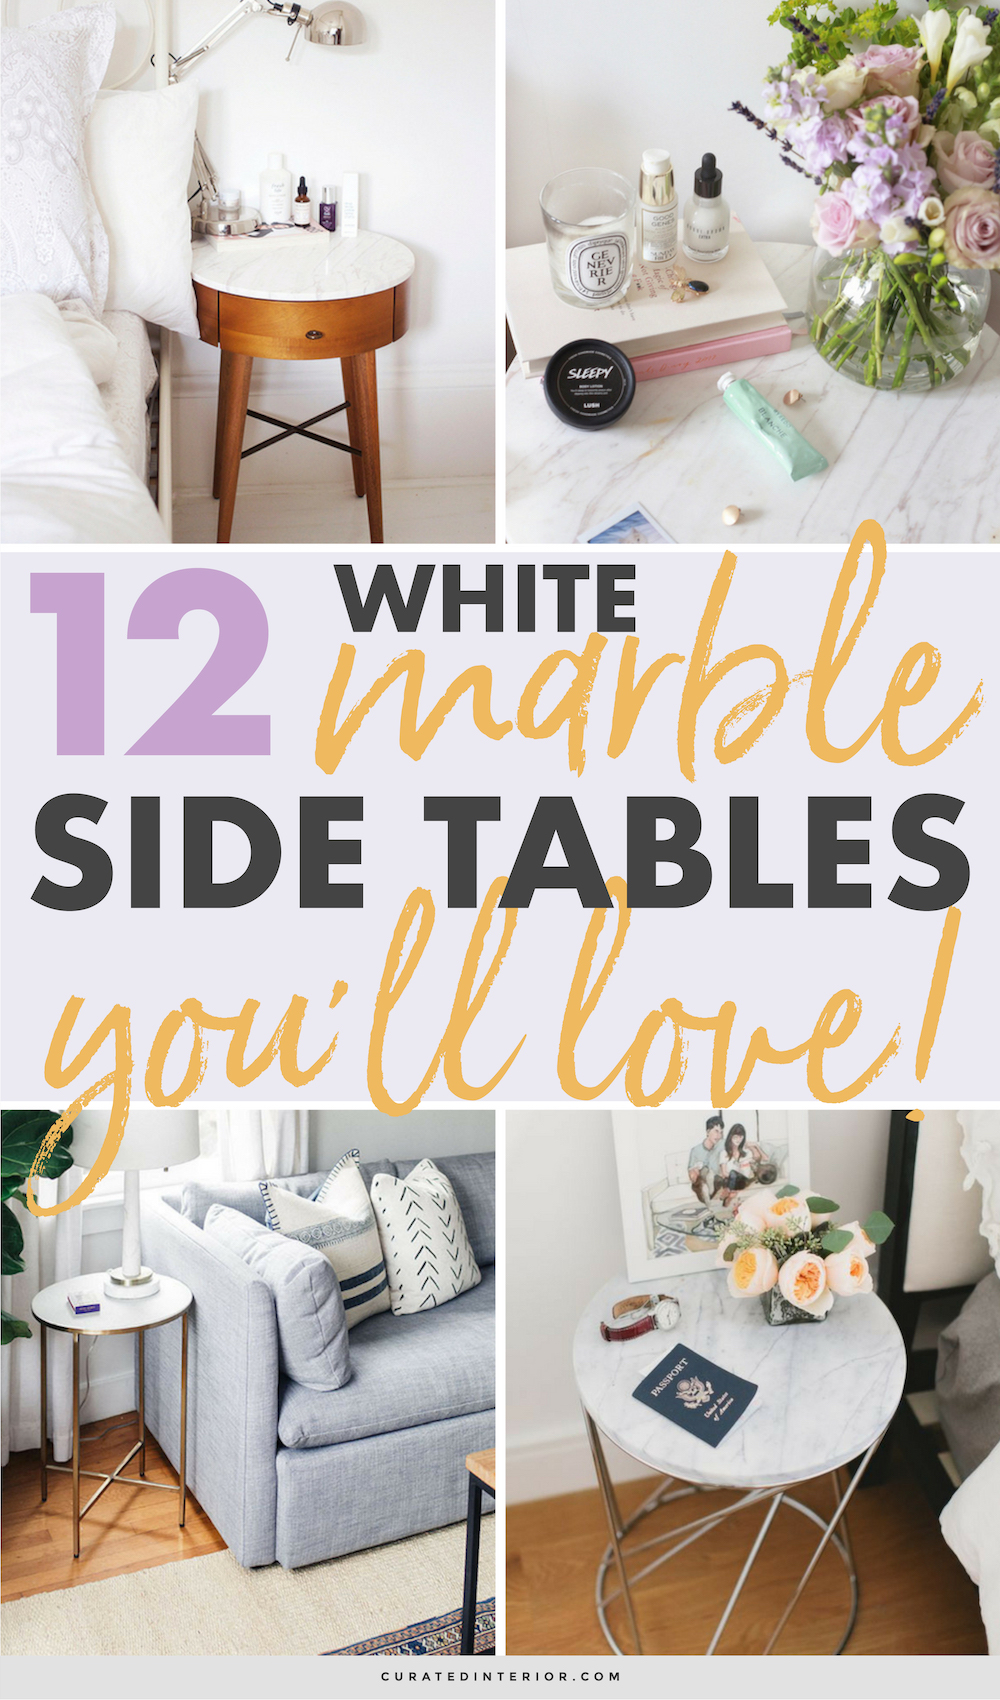 White Marble Side Tables You'll Love #marble #whitemarble #sidetables #homedecor